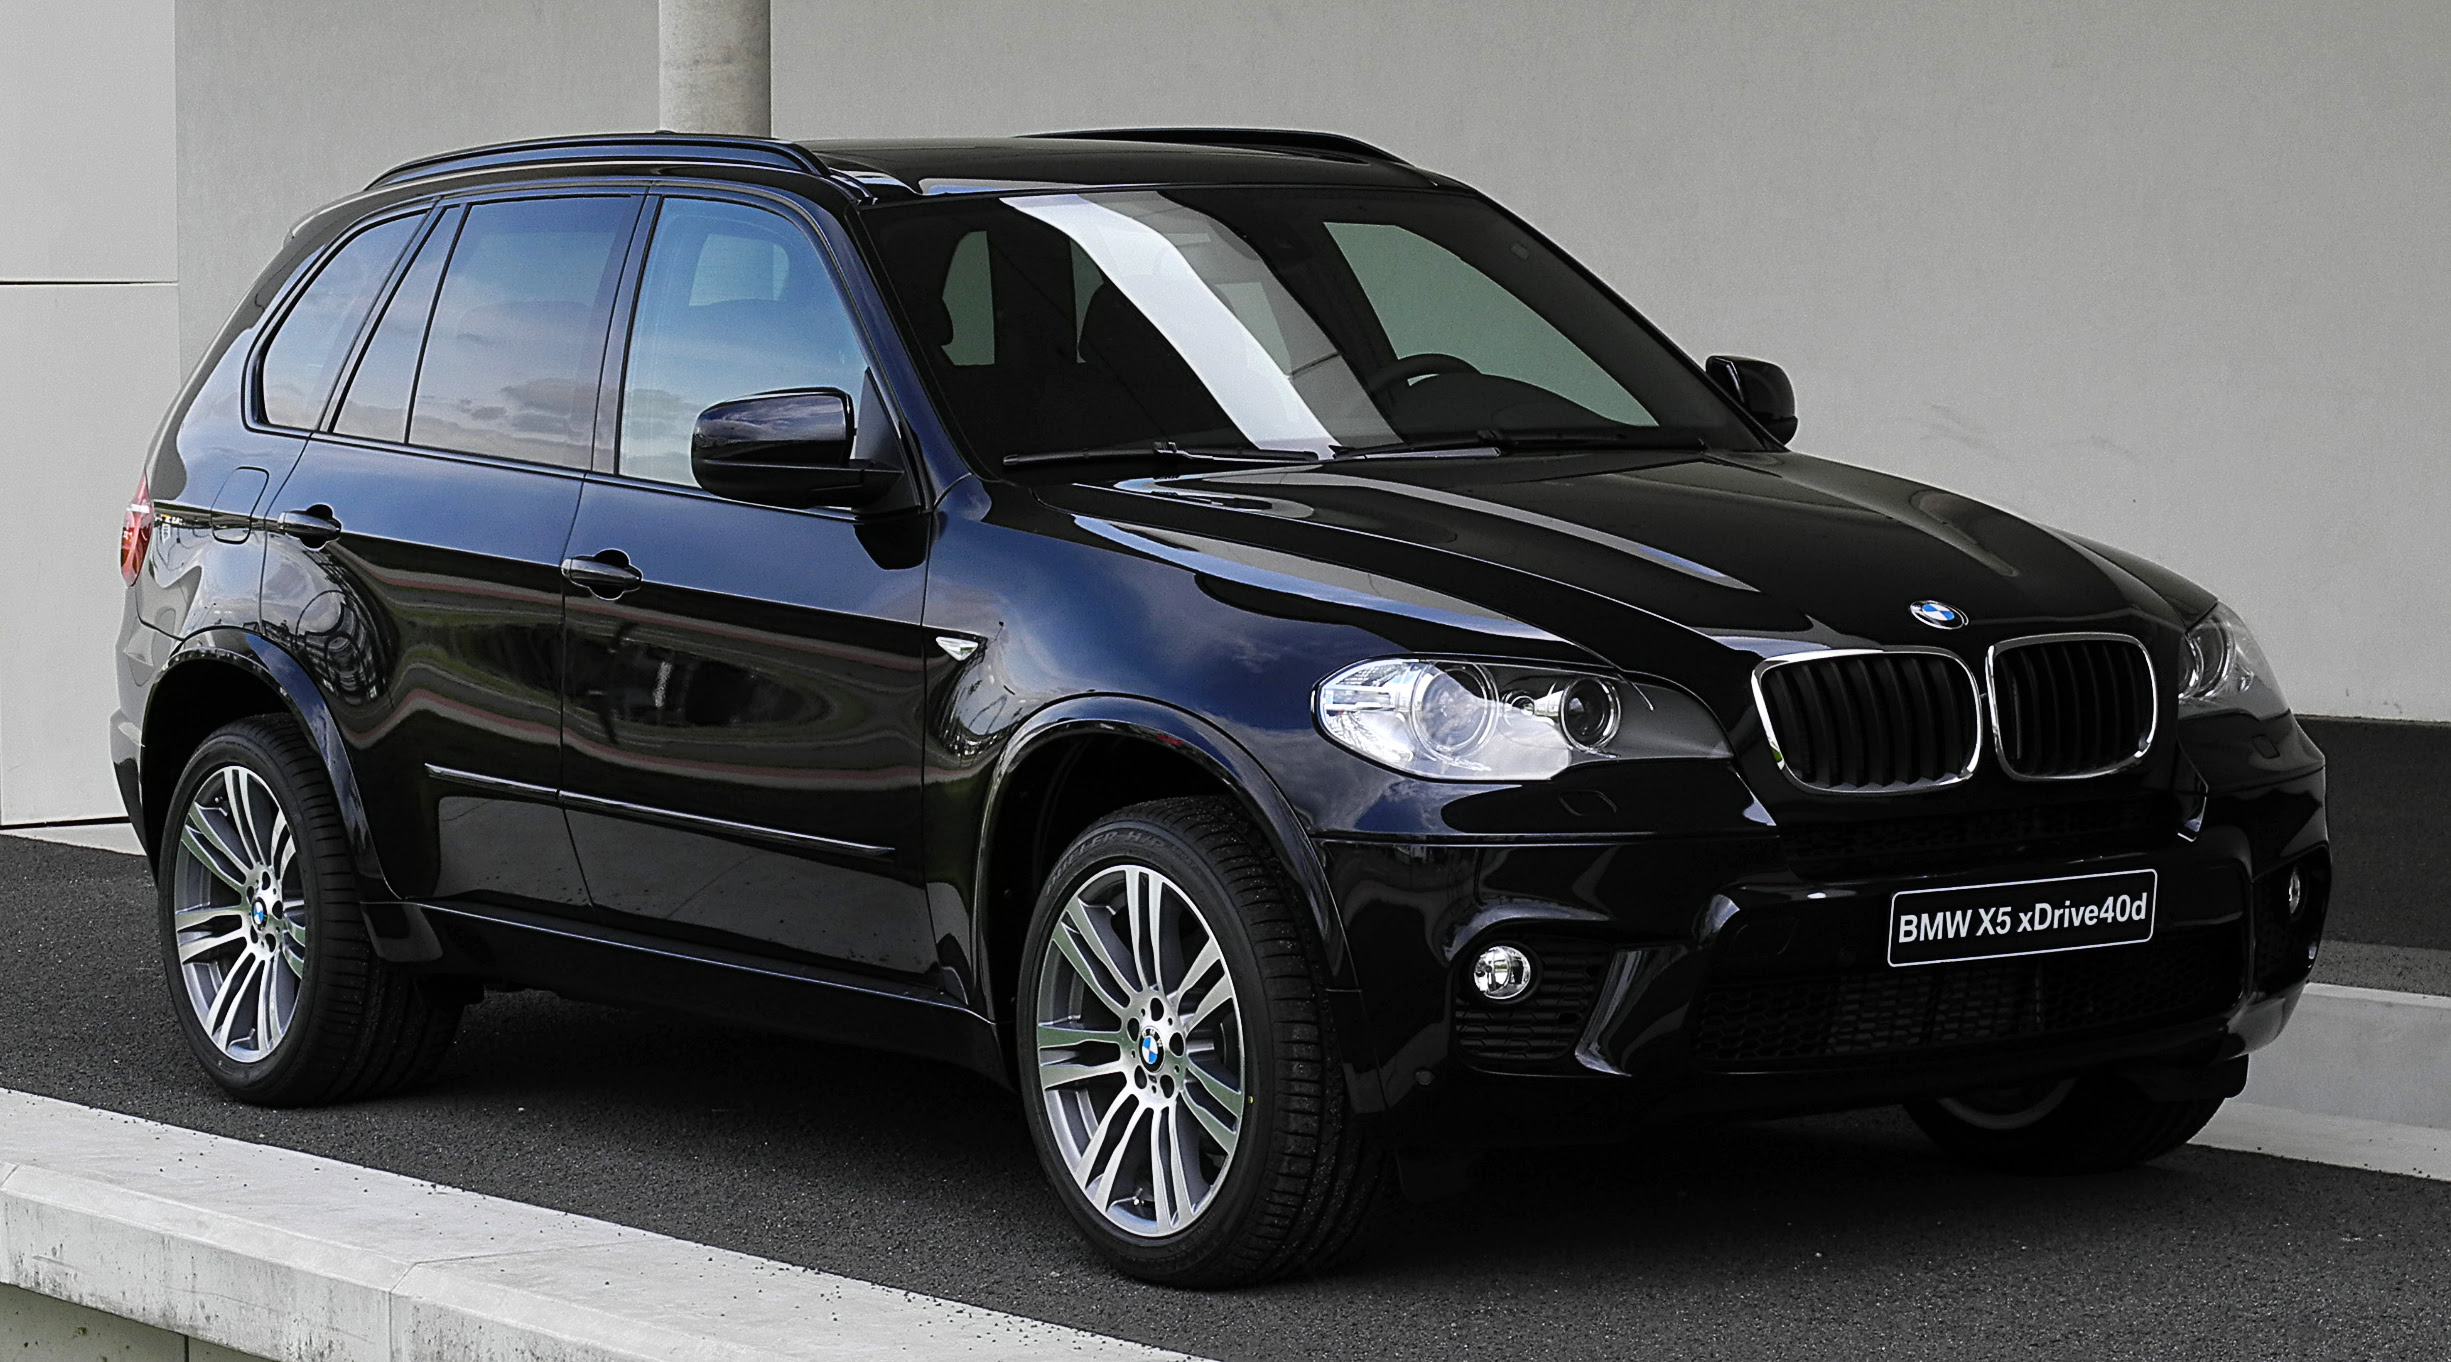 Bmw X5 E70 2010 Auto Databasecom